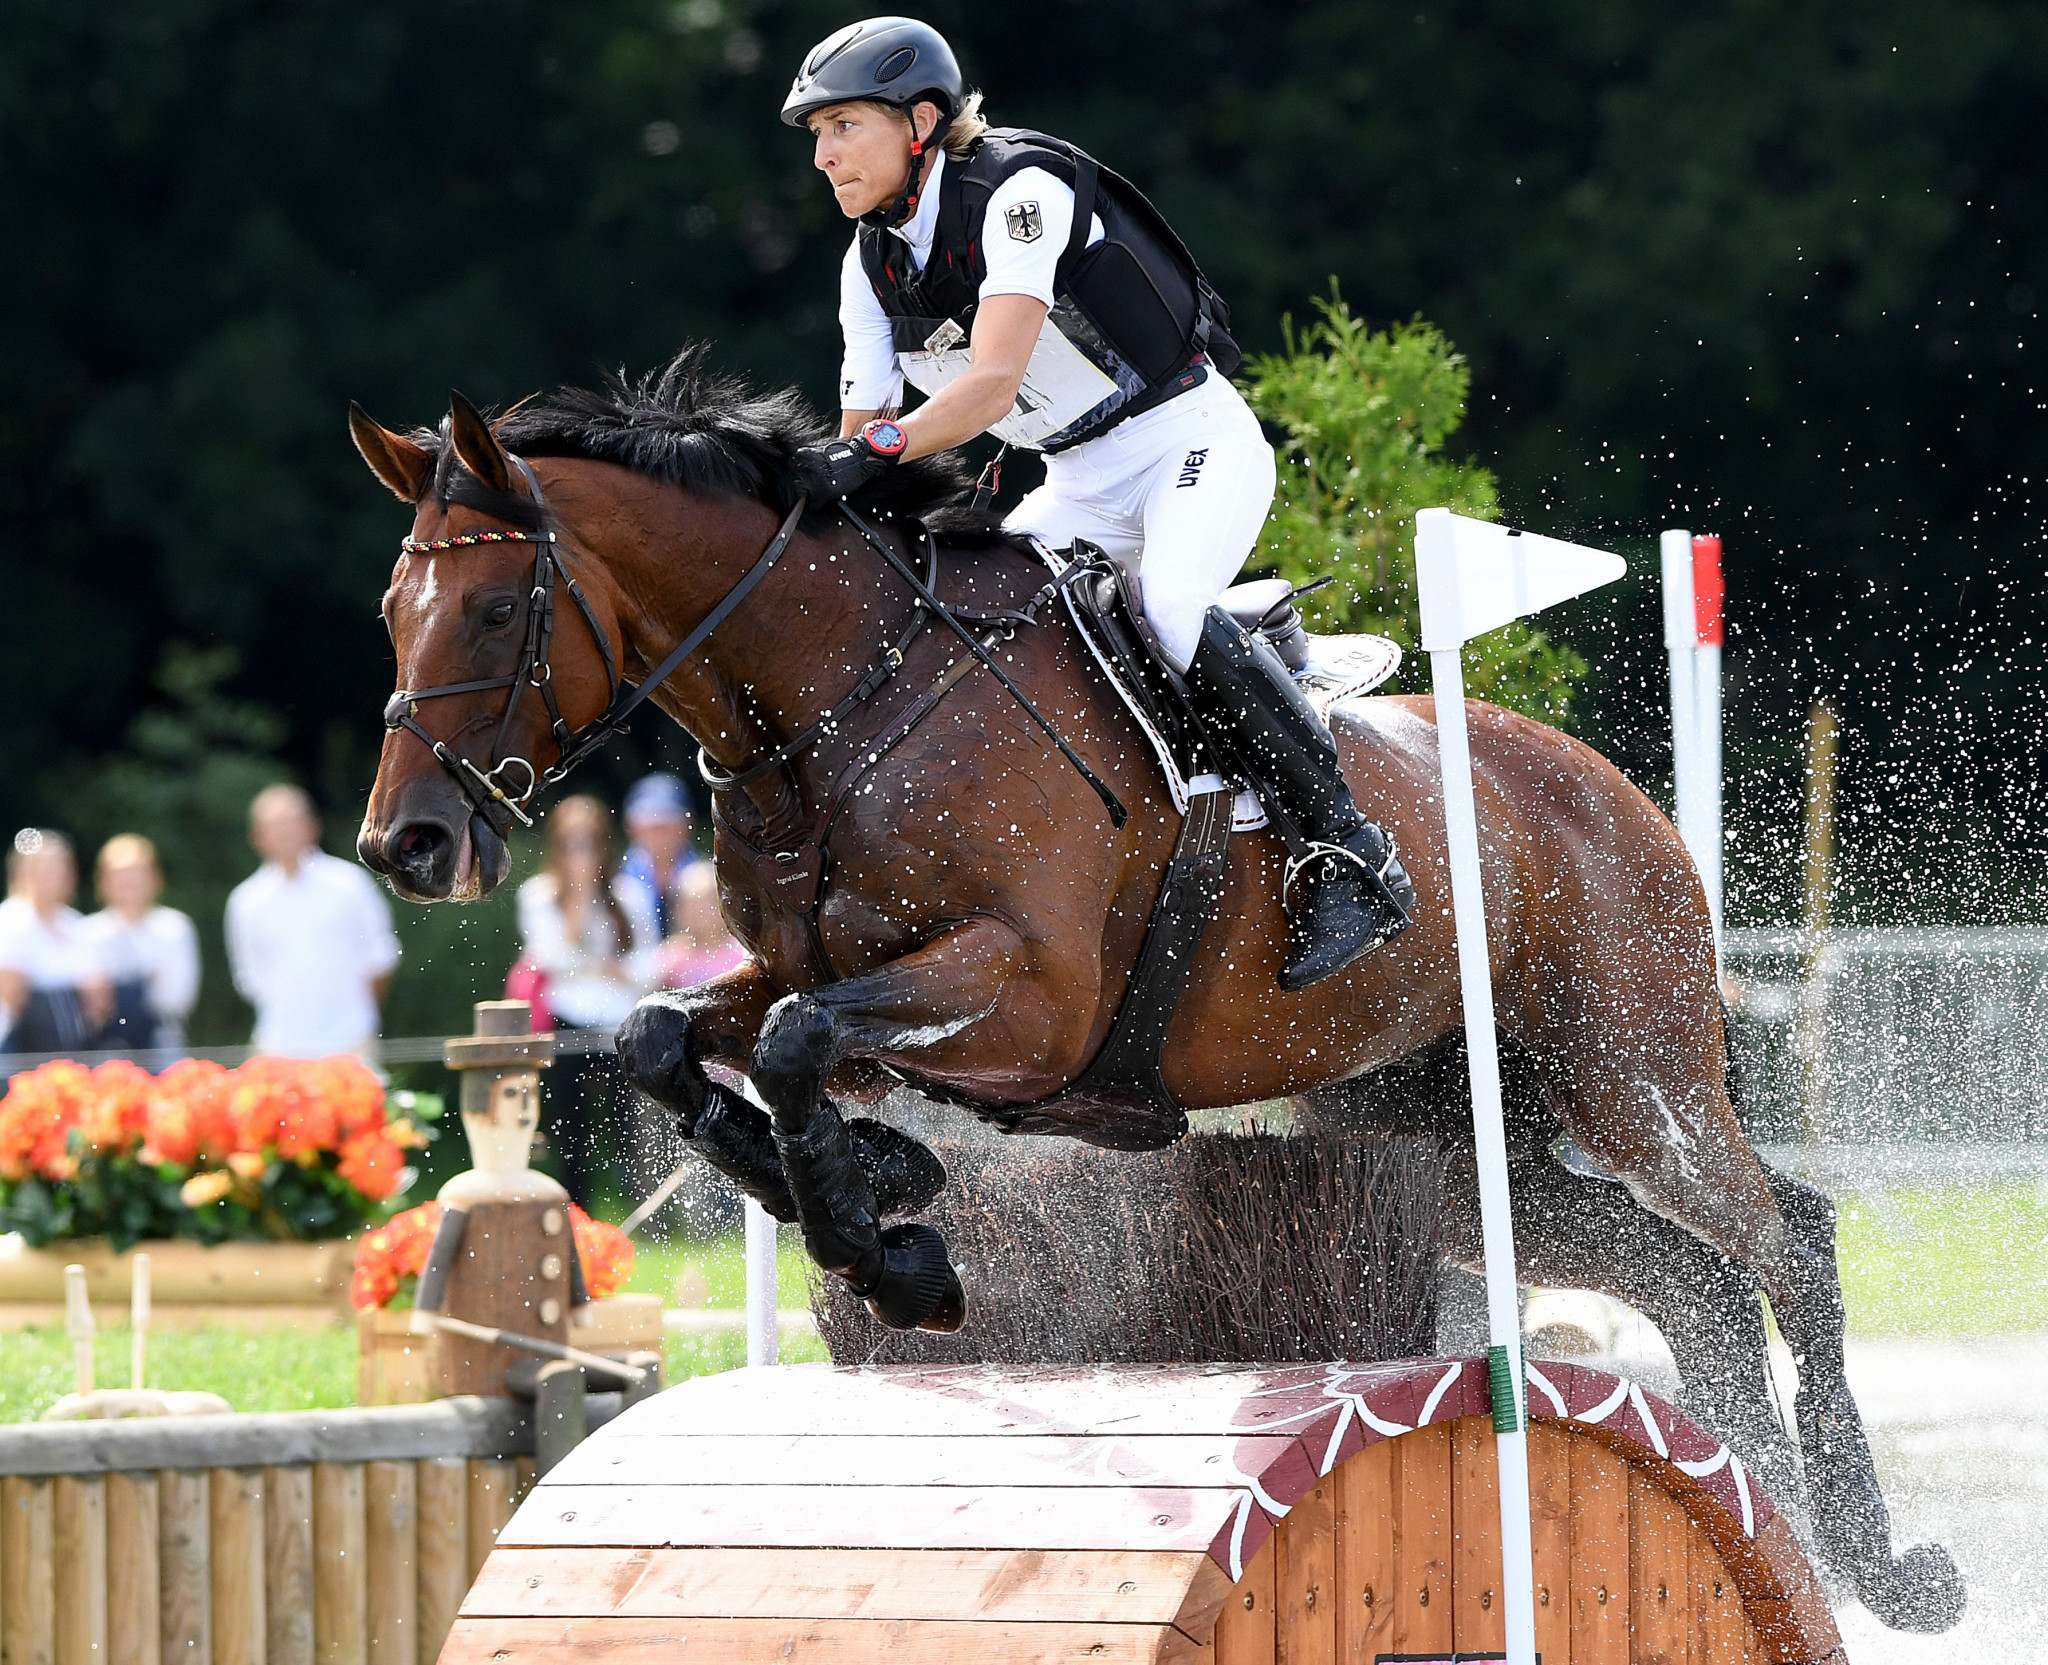 Germany's Ingrid Klimke captured gold medals in the individual and team events at the FEI Evening European Championships in 2019 ©Getty Images